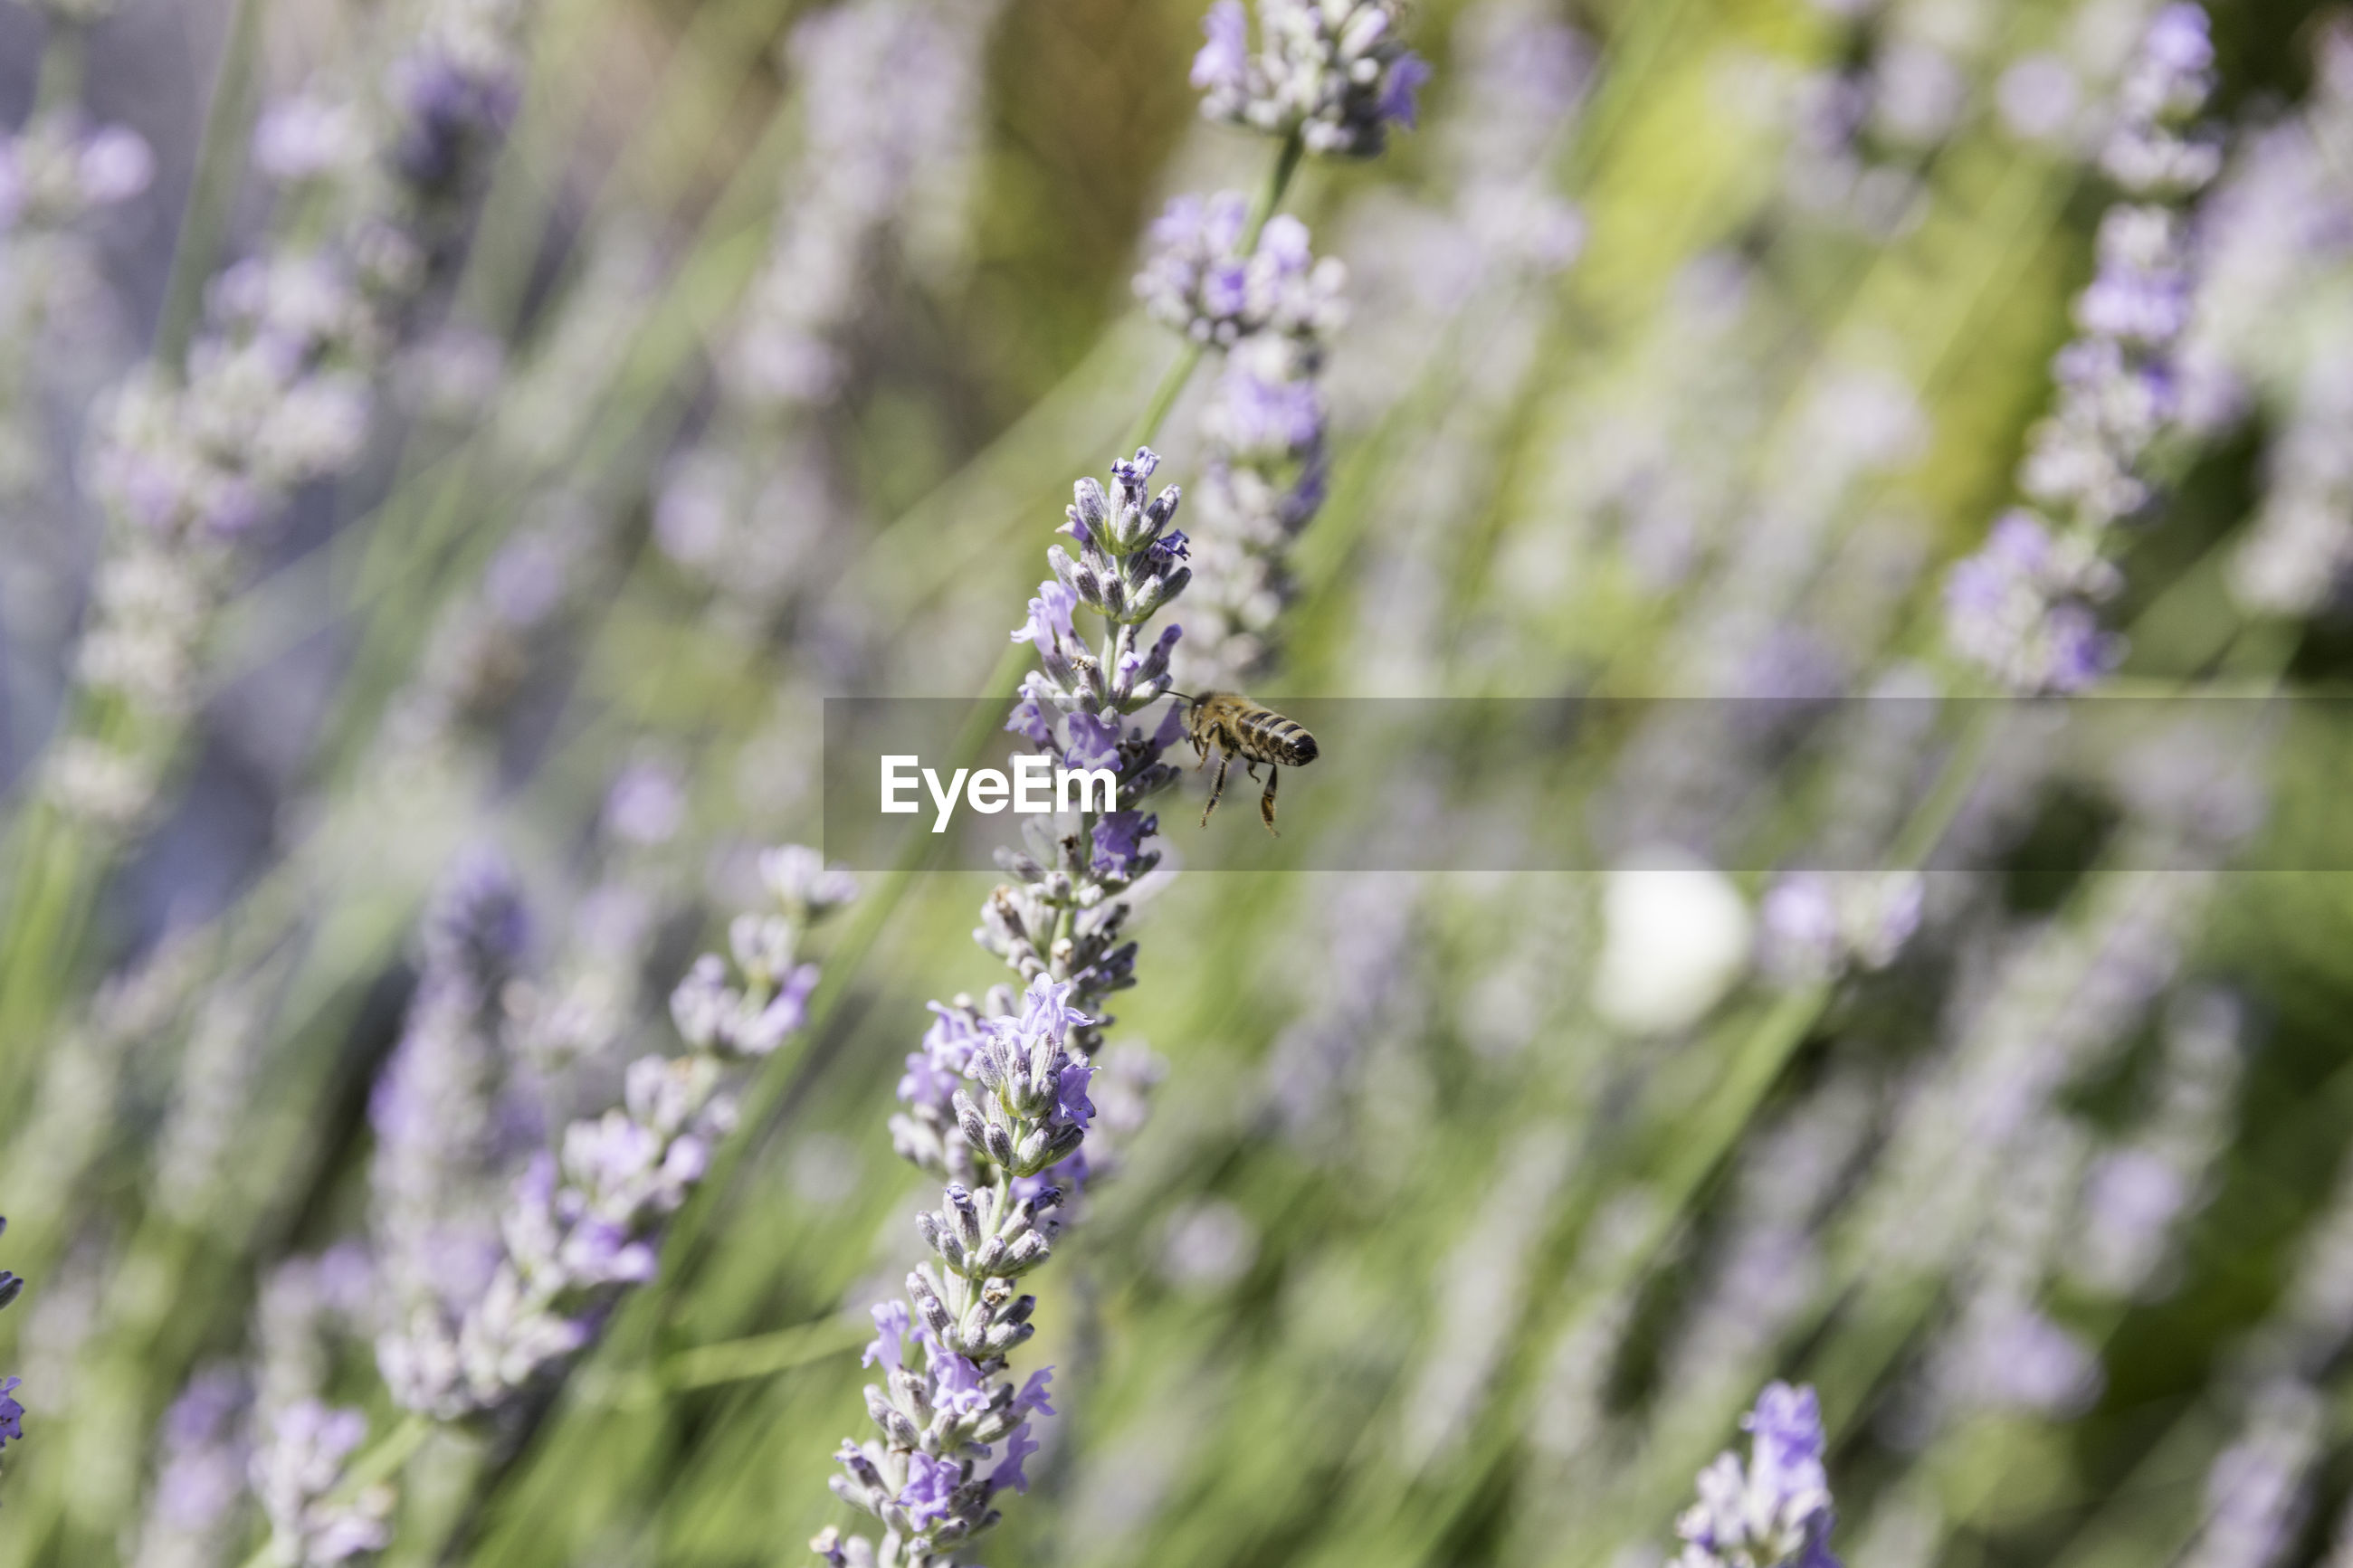 VIEW OF INSECT ON LAVENDER